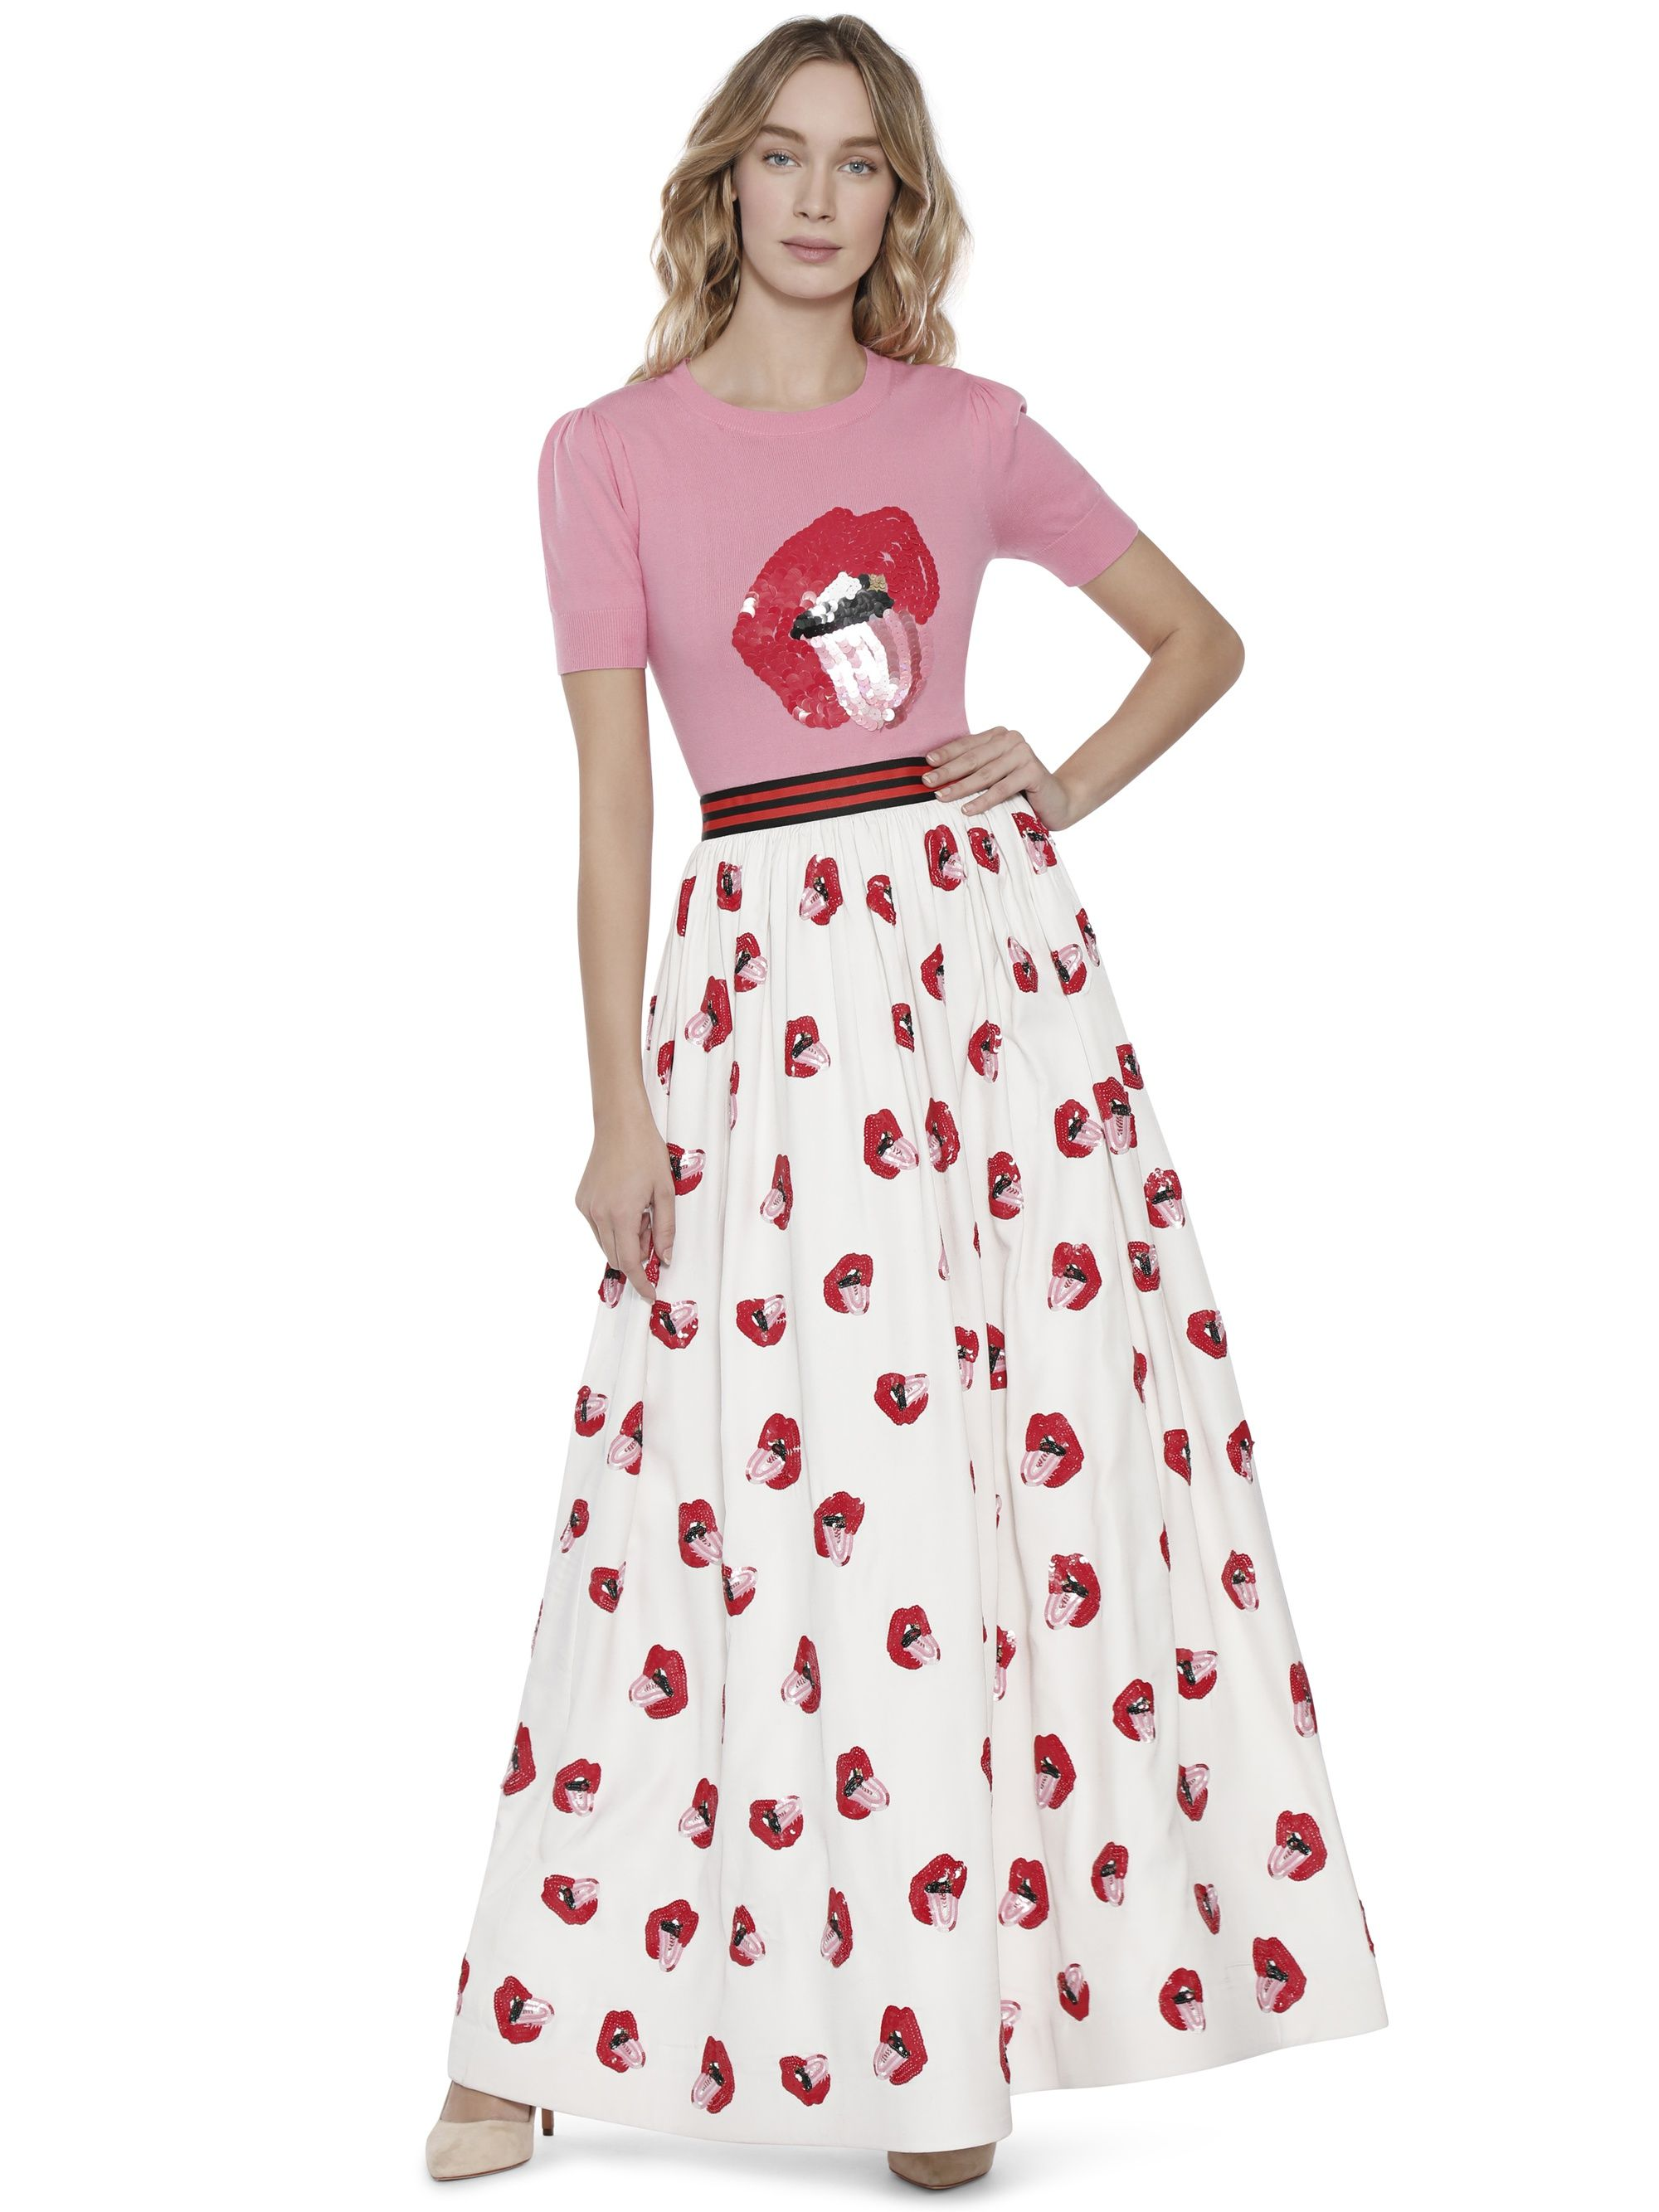 24448ca08e58 AO X DONALD TINA EMBELLISHED BALL GOWN SKIRT by Alice + Olivia ...